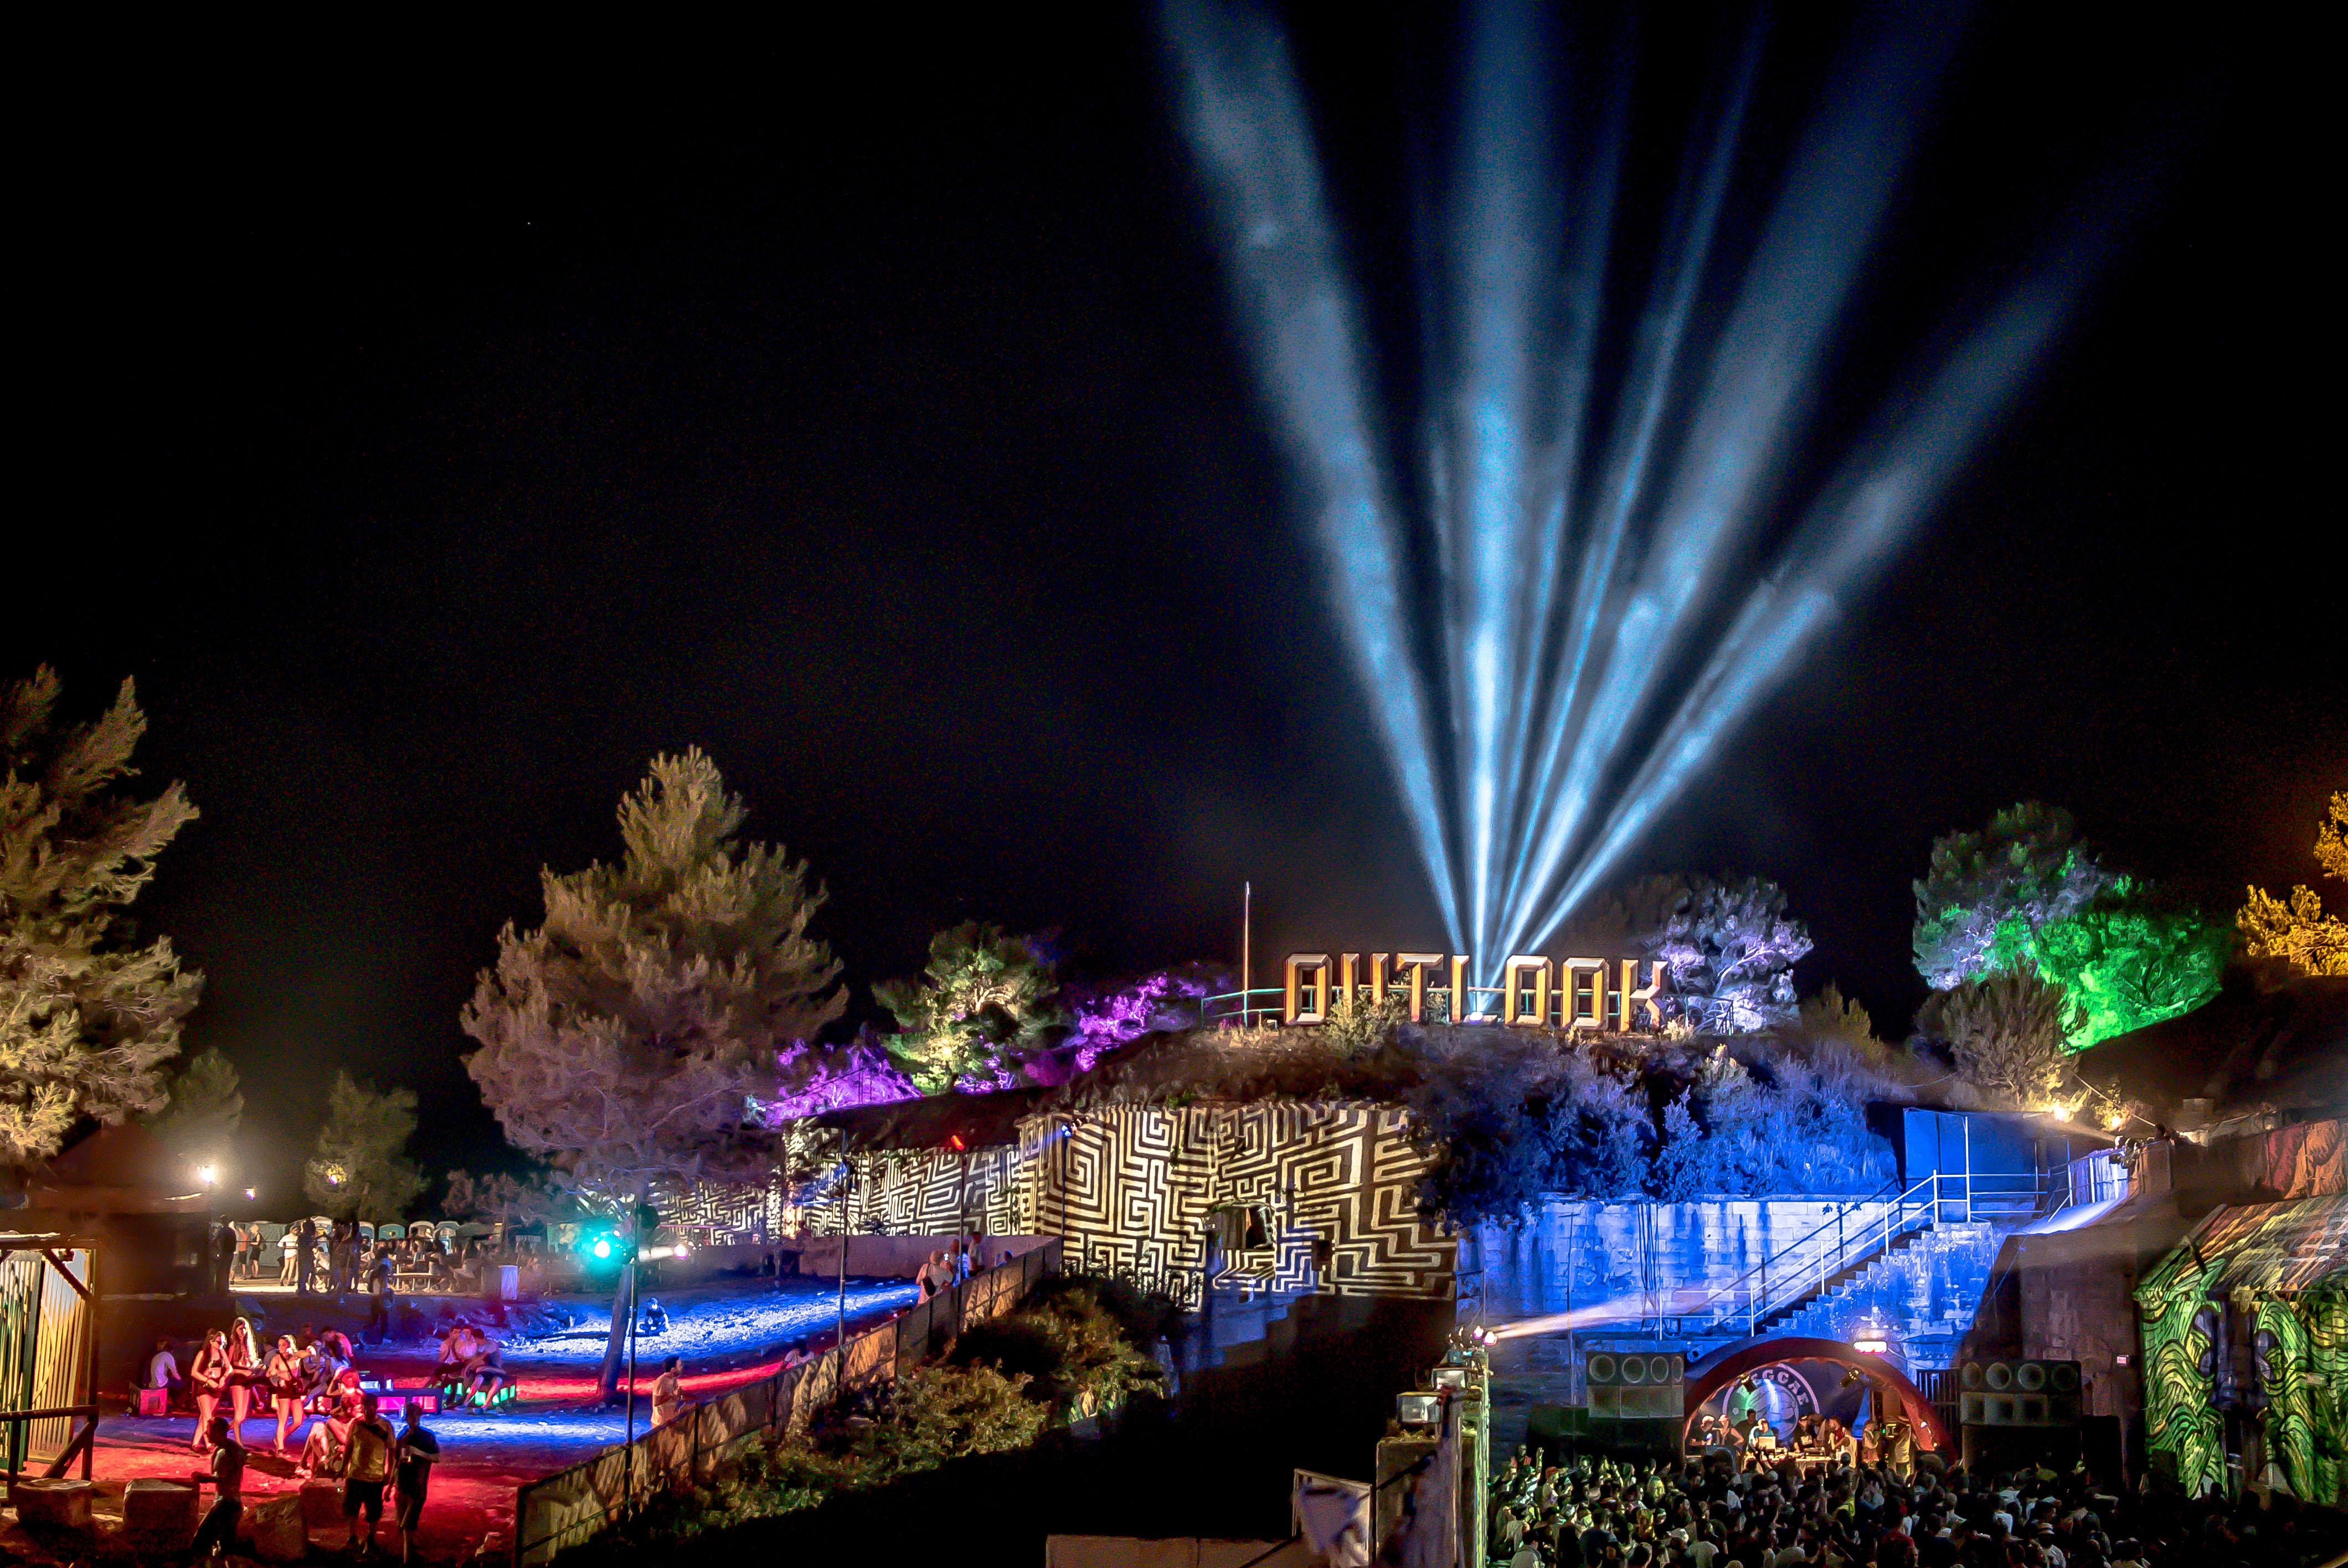 Avolites powers headline lighting and video at Outlook and Dimensions